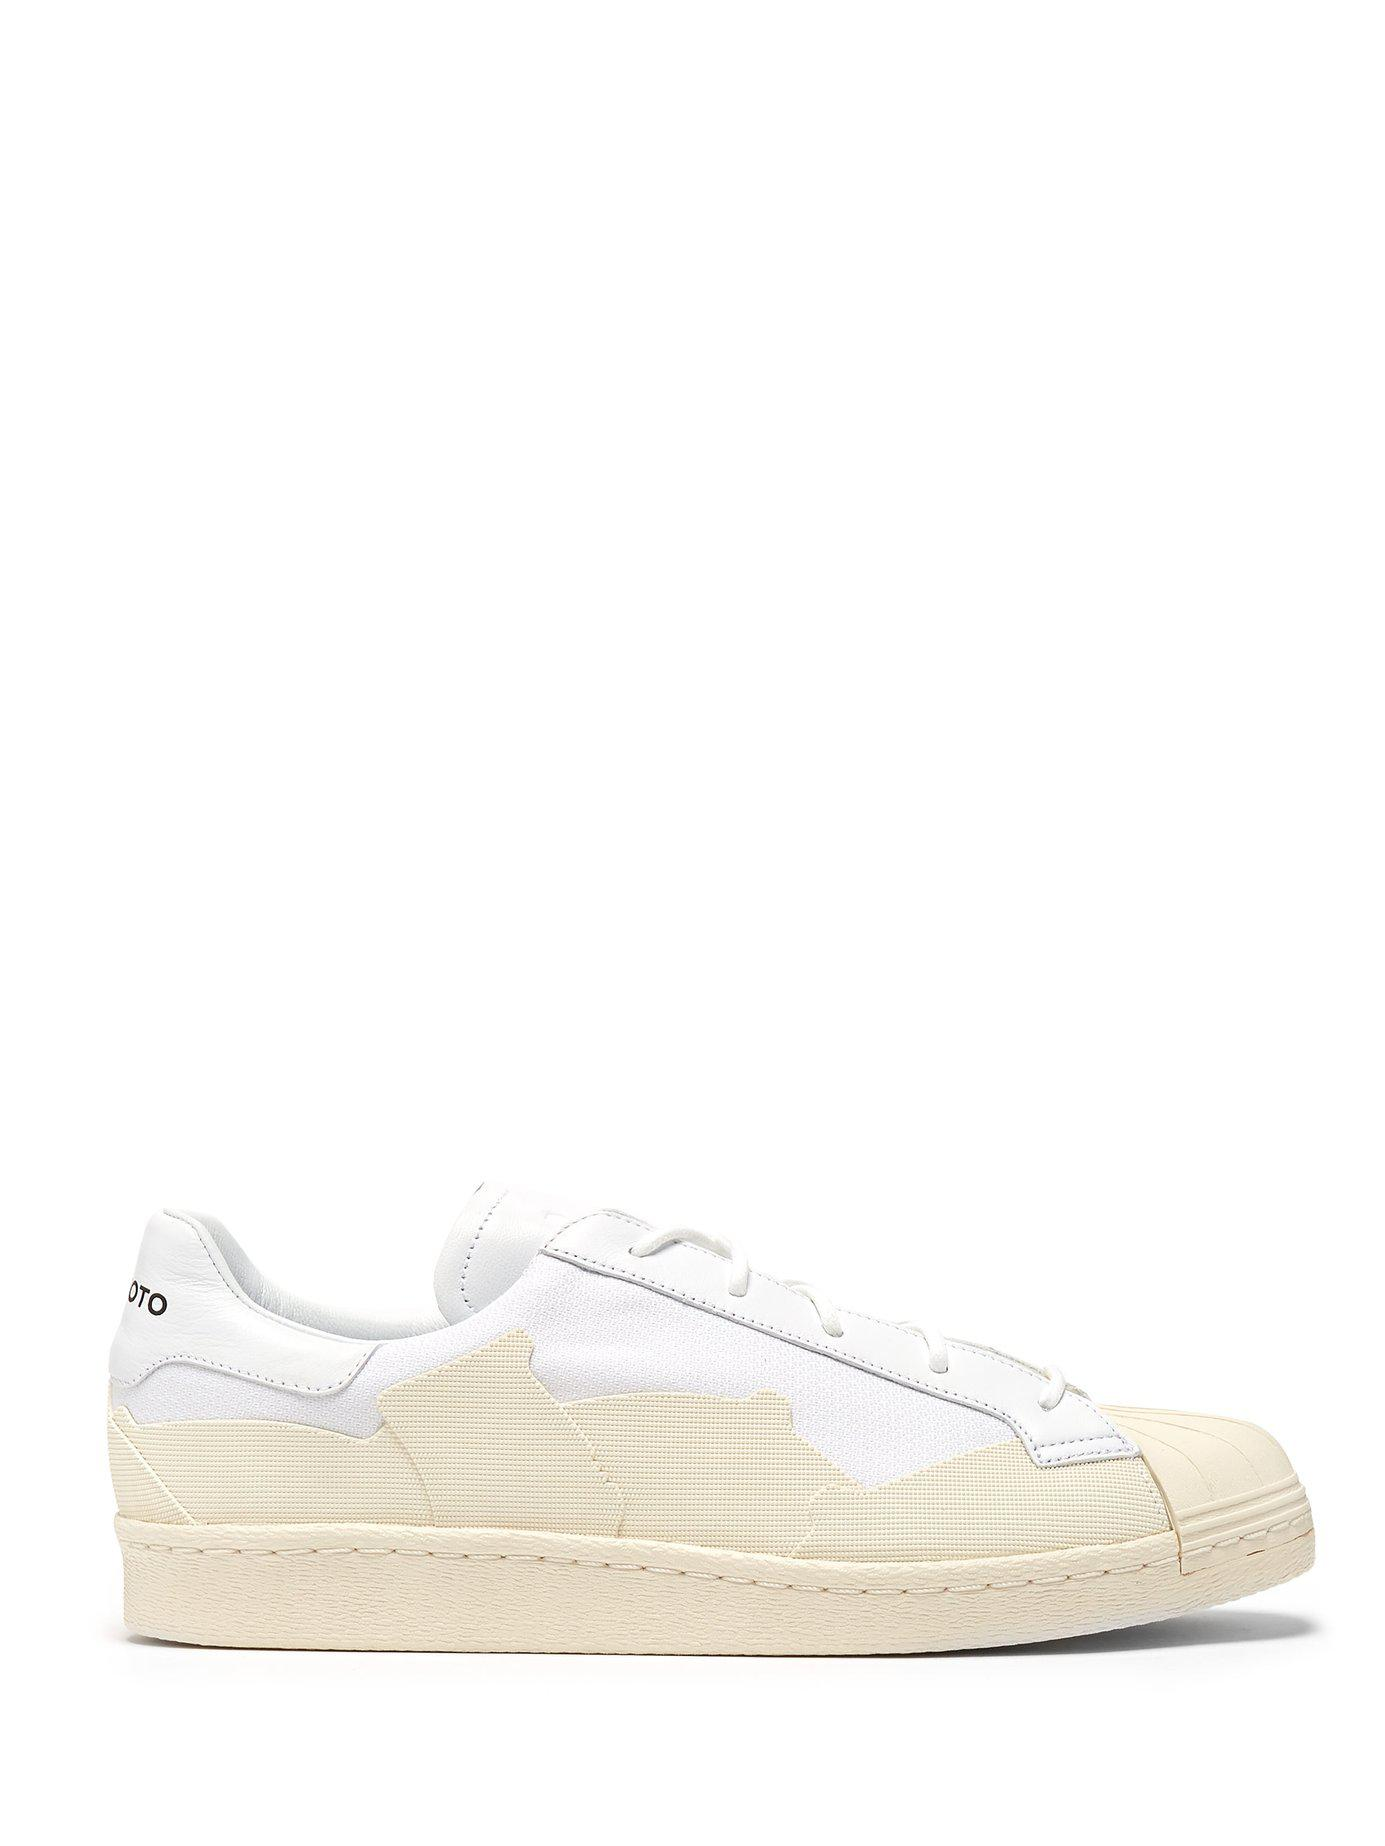 Lyst - Y-3 Super Takusan Canvas And Leather Trainers in White for Men 0d34cbf20ce